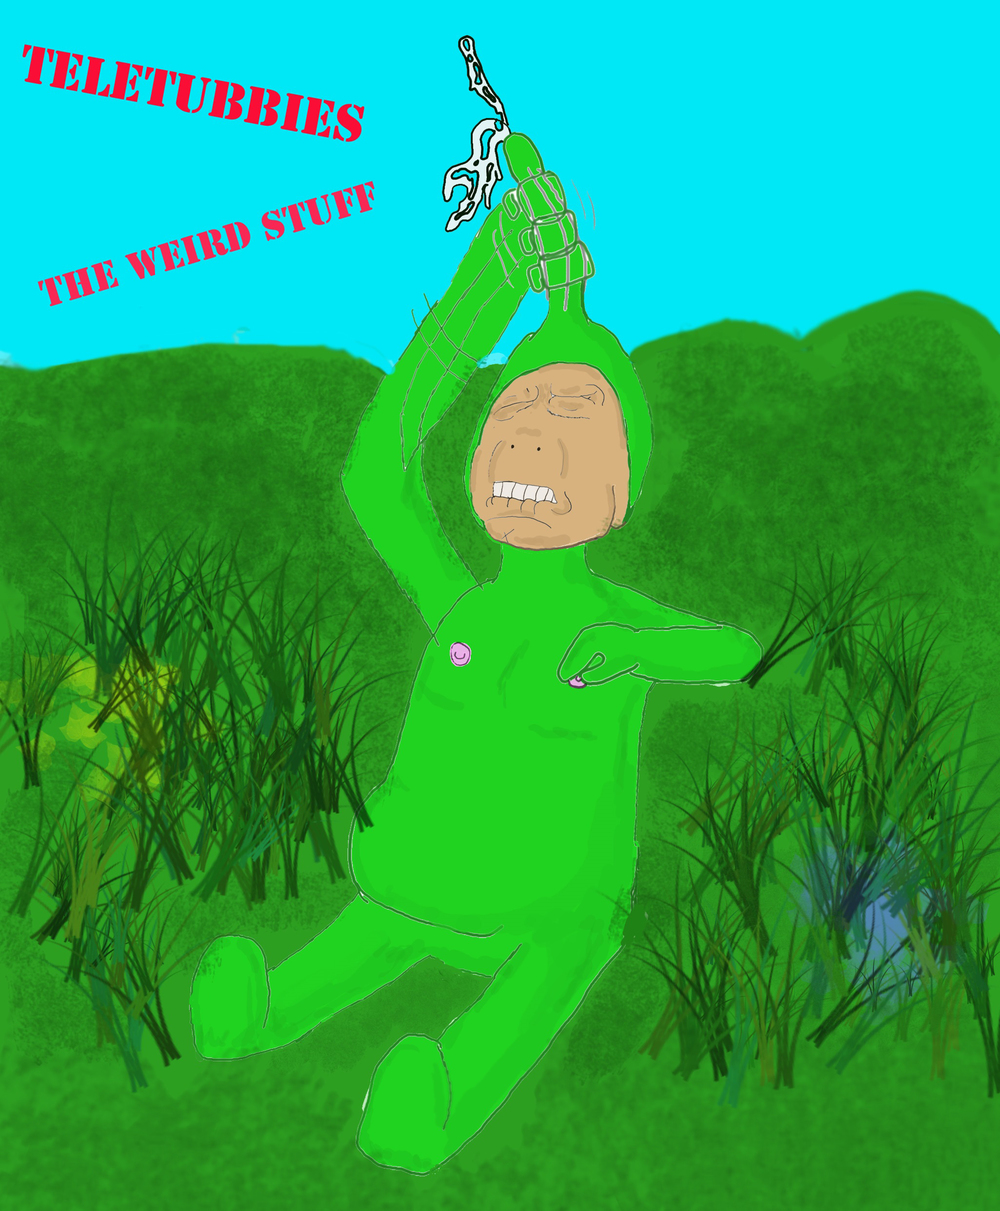 title: Teletubbies- the weird stuff #2